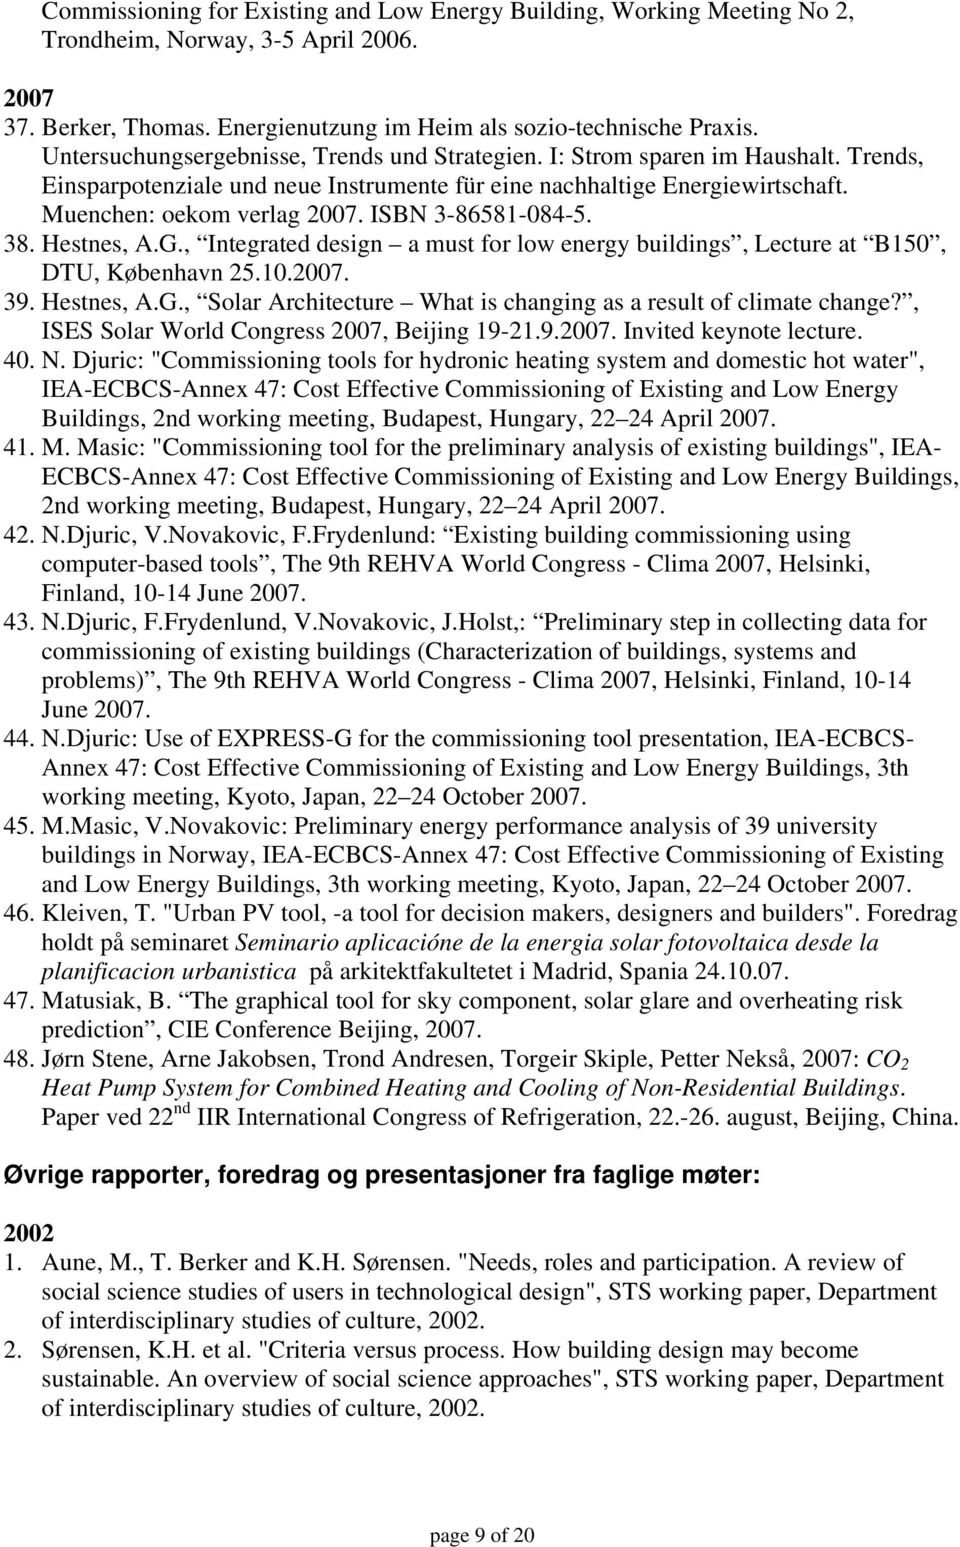 ISBN 3-86581-084-5. 38. Hestnes, A.G., Integrated design a must for low energy buildings, Lecture at B150, DTU, København 25.10.2007. 39. Hestnes, A.G., Solar Architecture What is changing as a result of climate change?